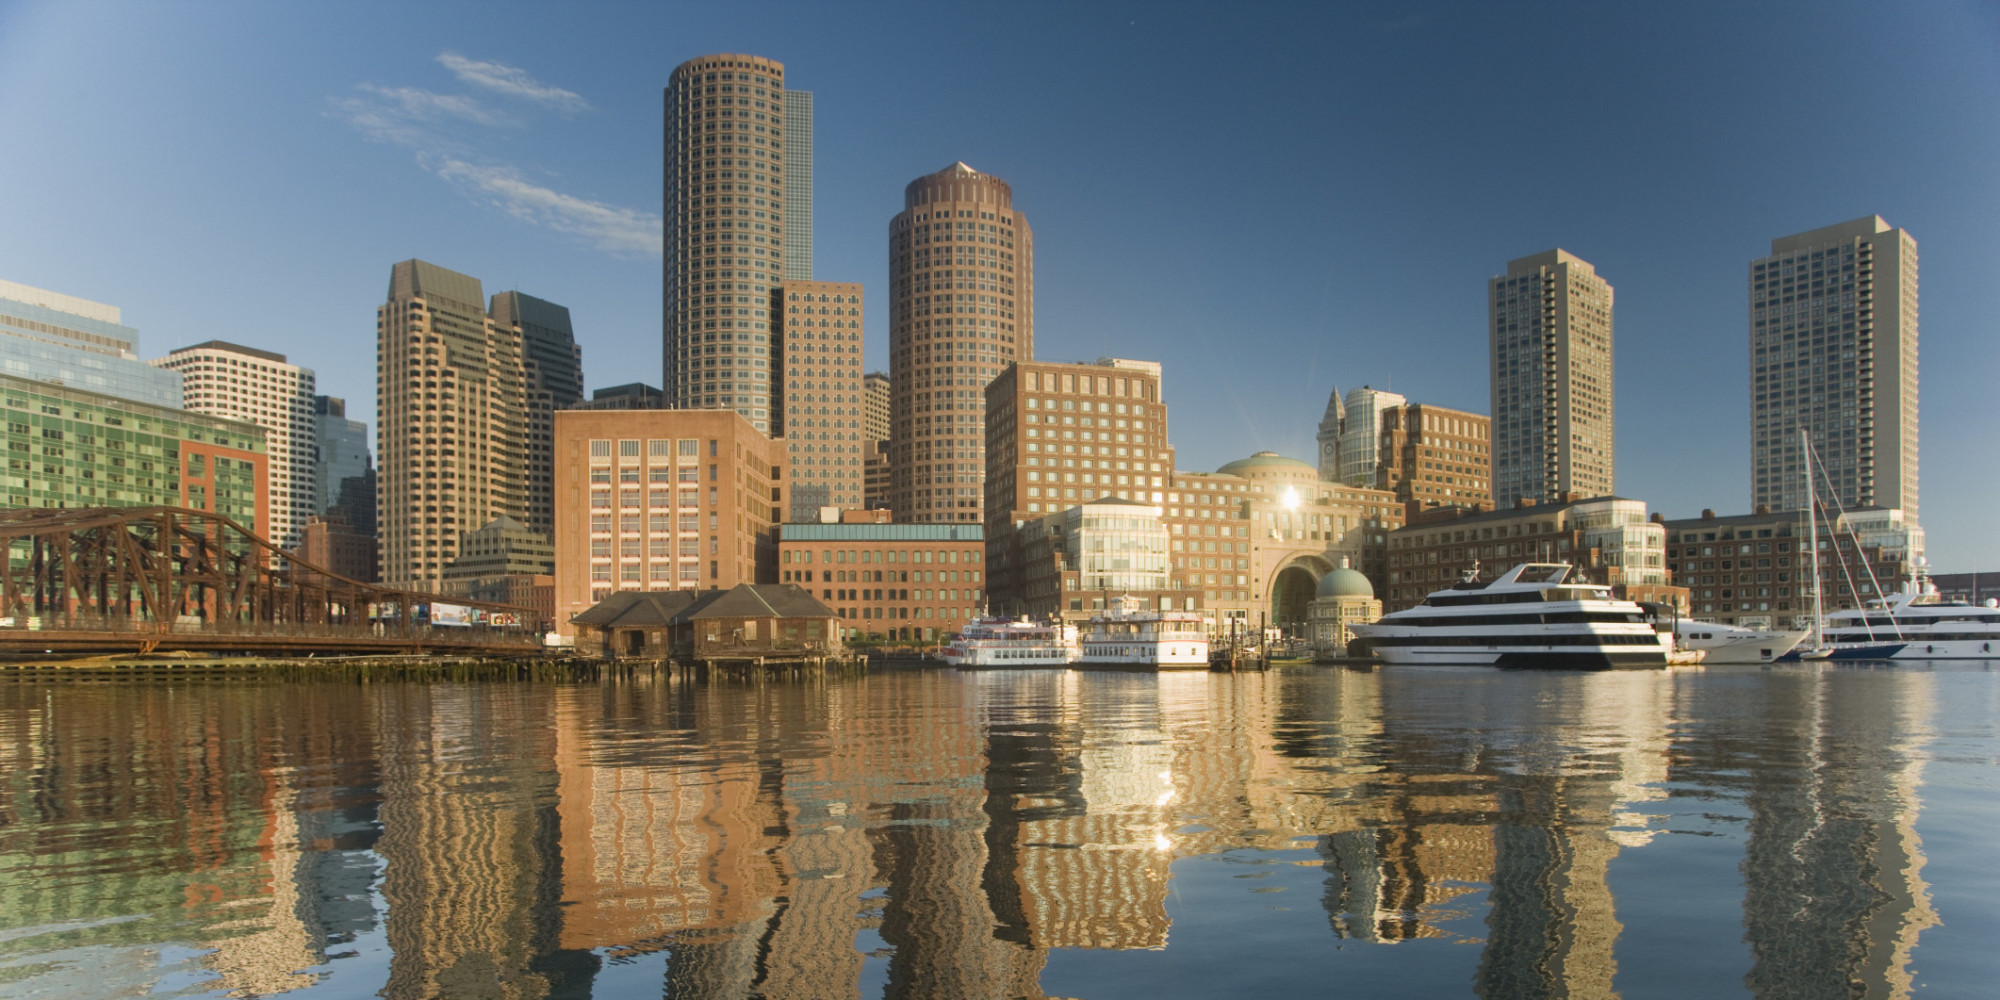 places america live healthiest living cities healthy boston travel well visit go too huffpost